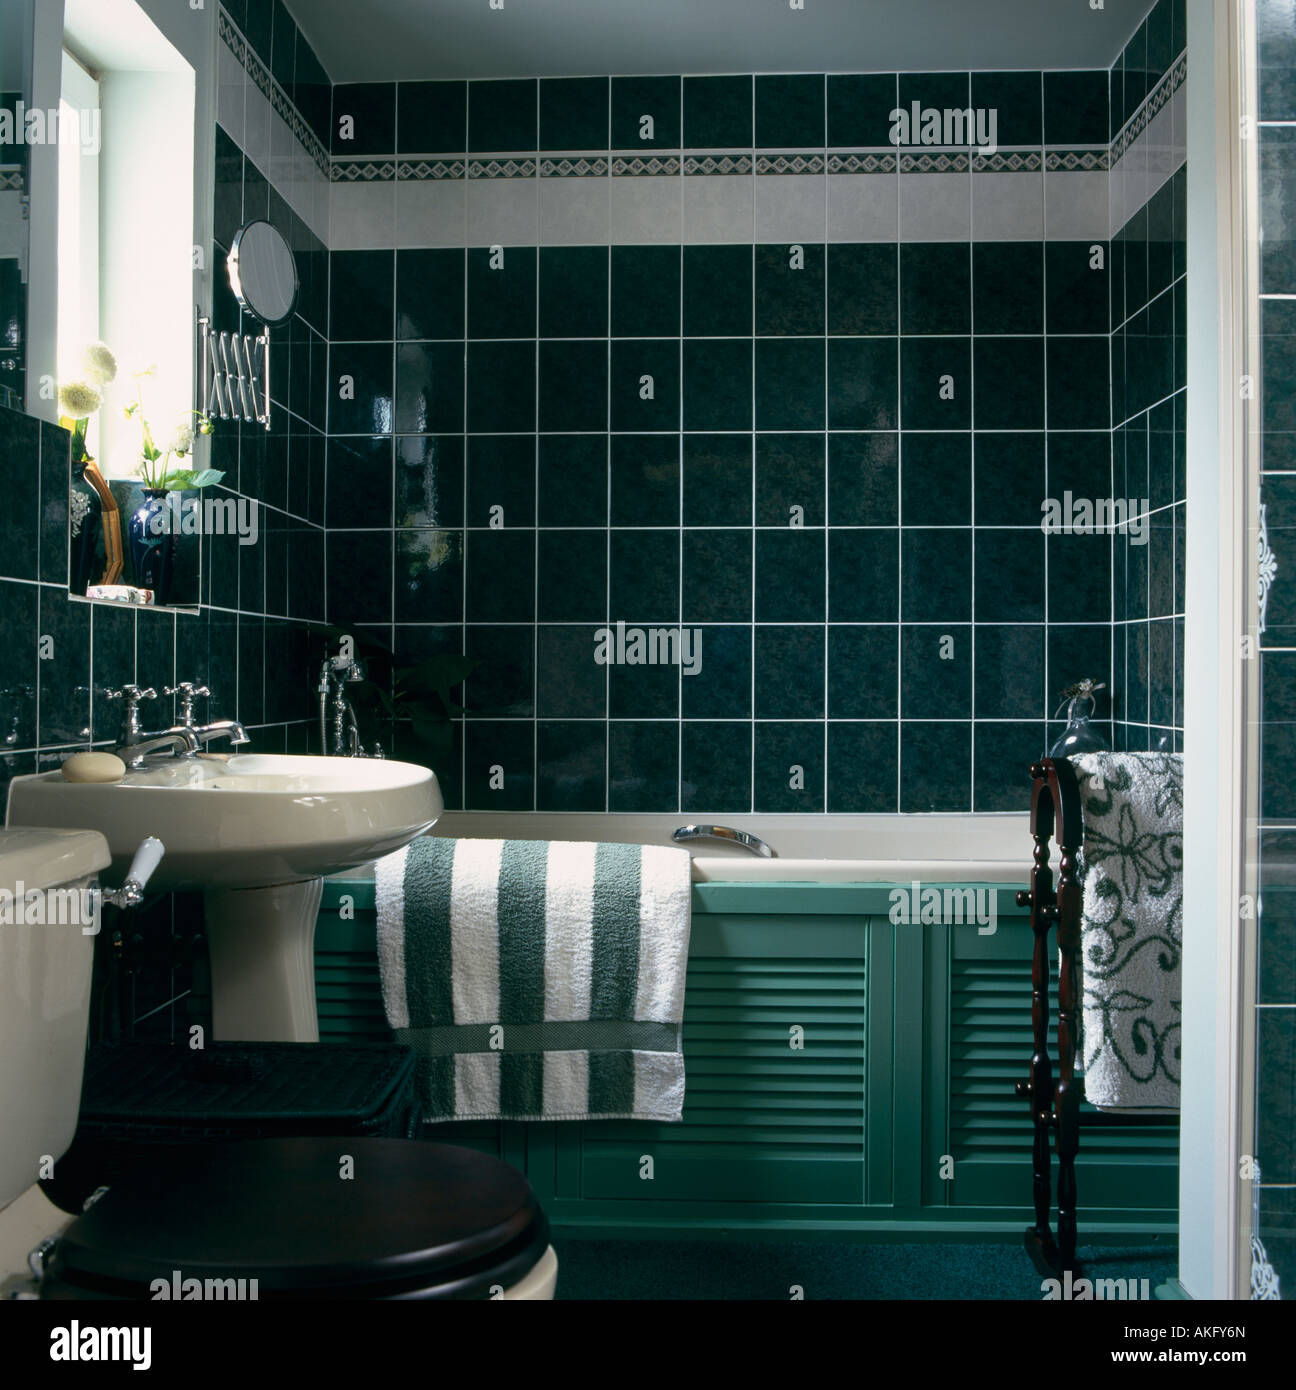 Green Striped Towel On White Bath With Green Panelling In Bathroom Stock Photo, Royalty Free